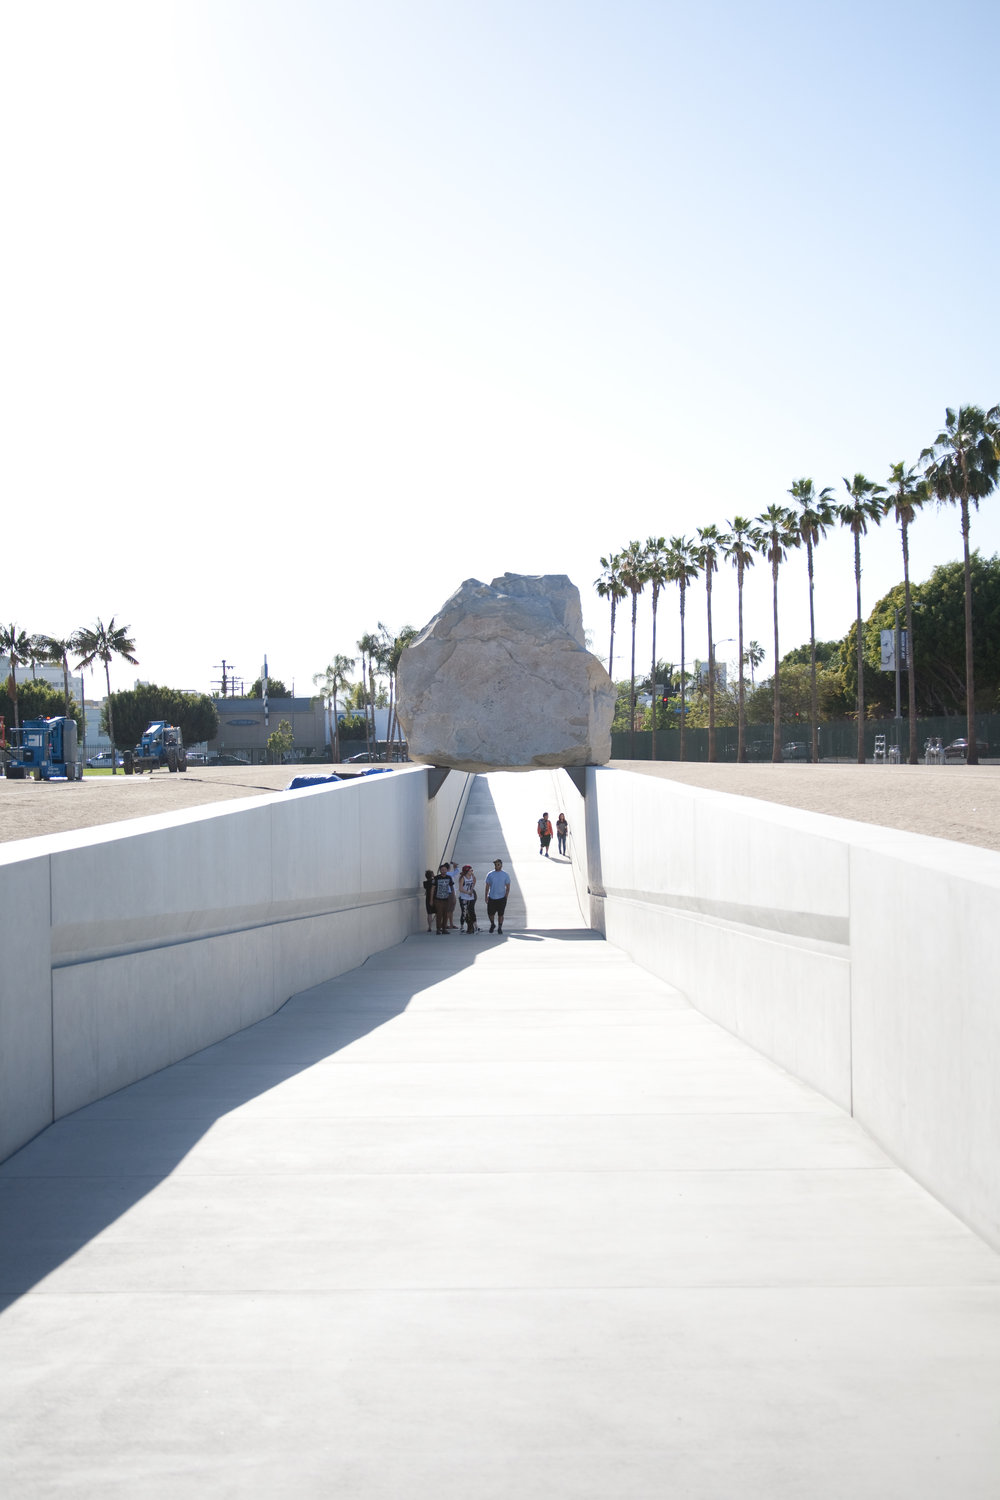 'Levitated Mass' by Michael Heizer @ LACMA / Los Angeles, CA / img cred: Kara McCulloh